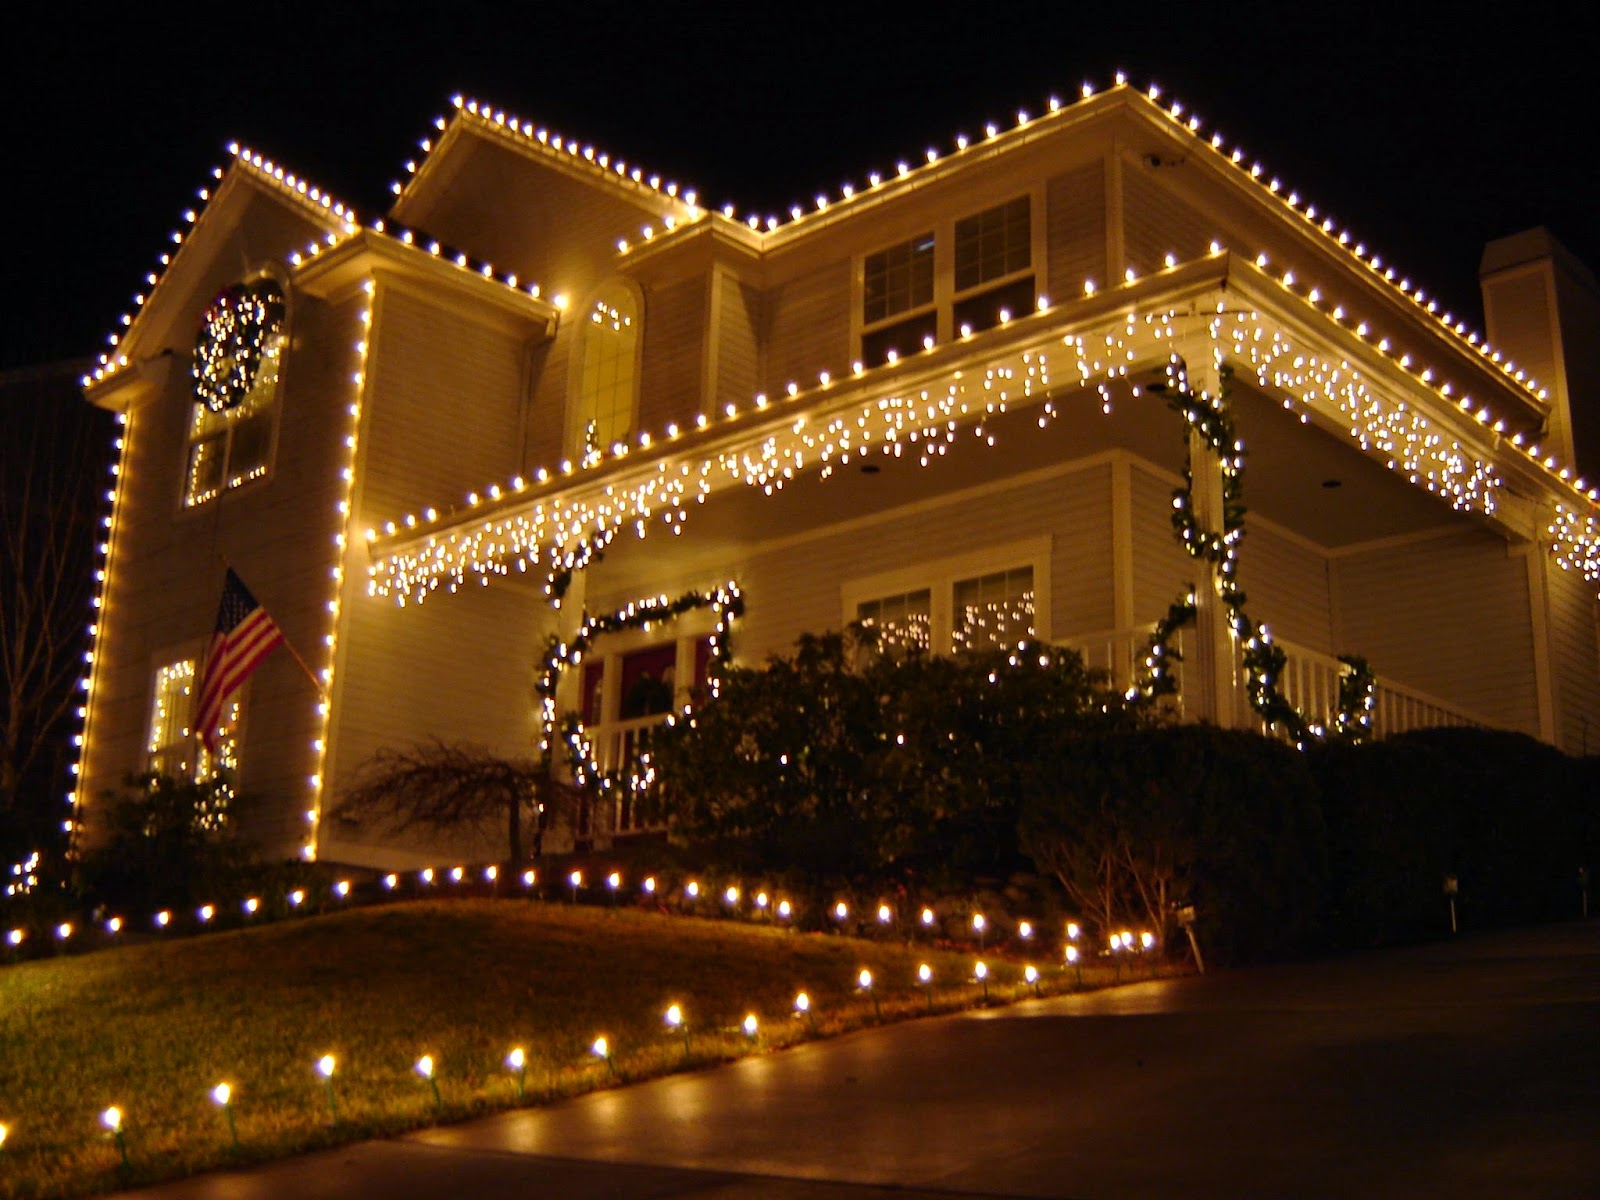 big exterior christmas lights 7 renovation ideas enhancedhomes org